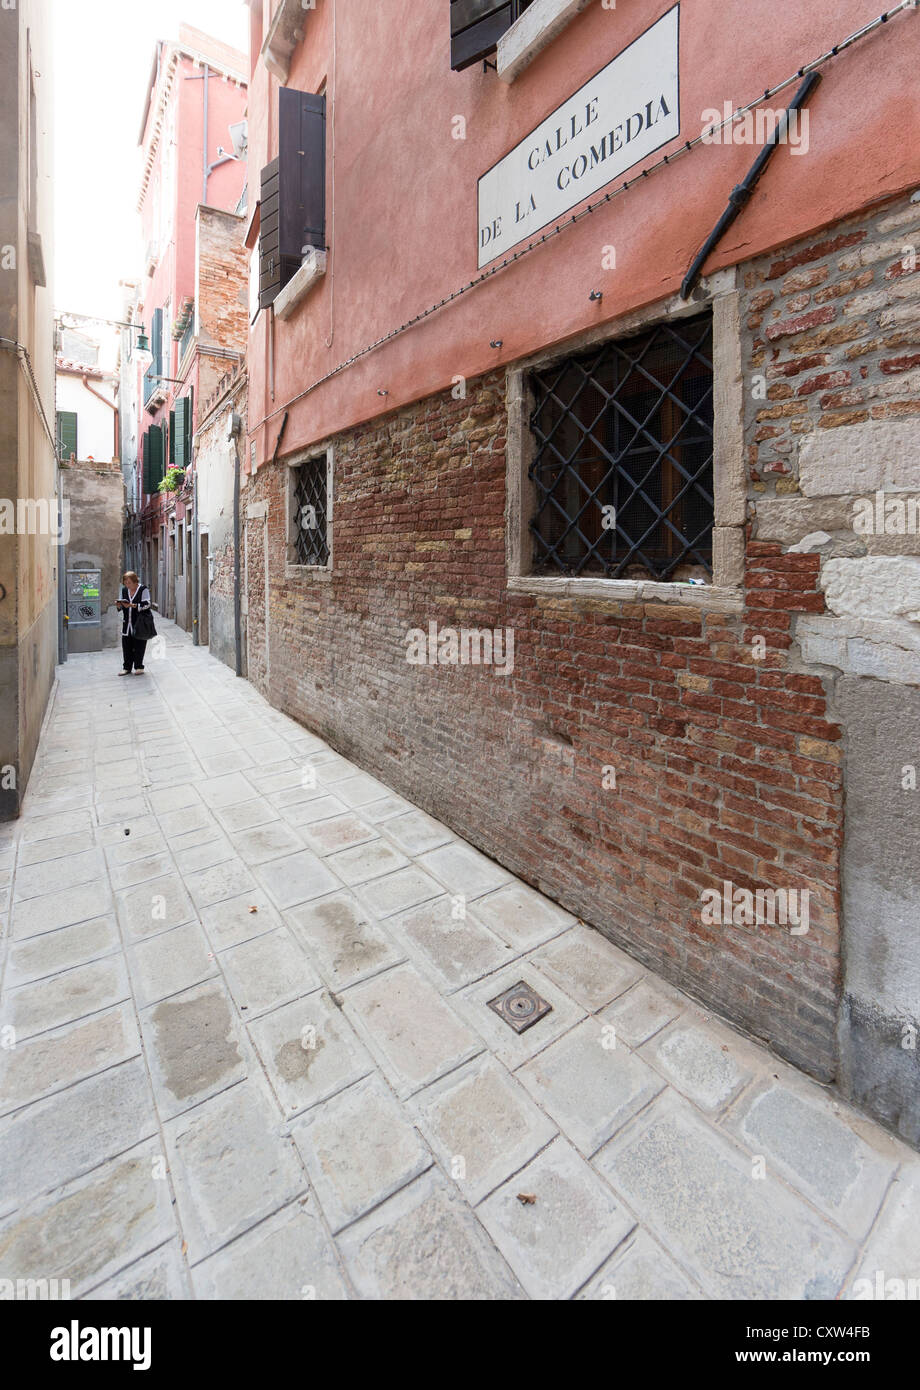 Wideangle view of the Calle de la Comedia in Venice with a woman in the background reading a pamphlet, leaflet or - Stock Image